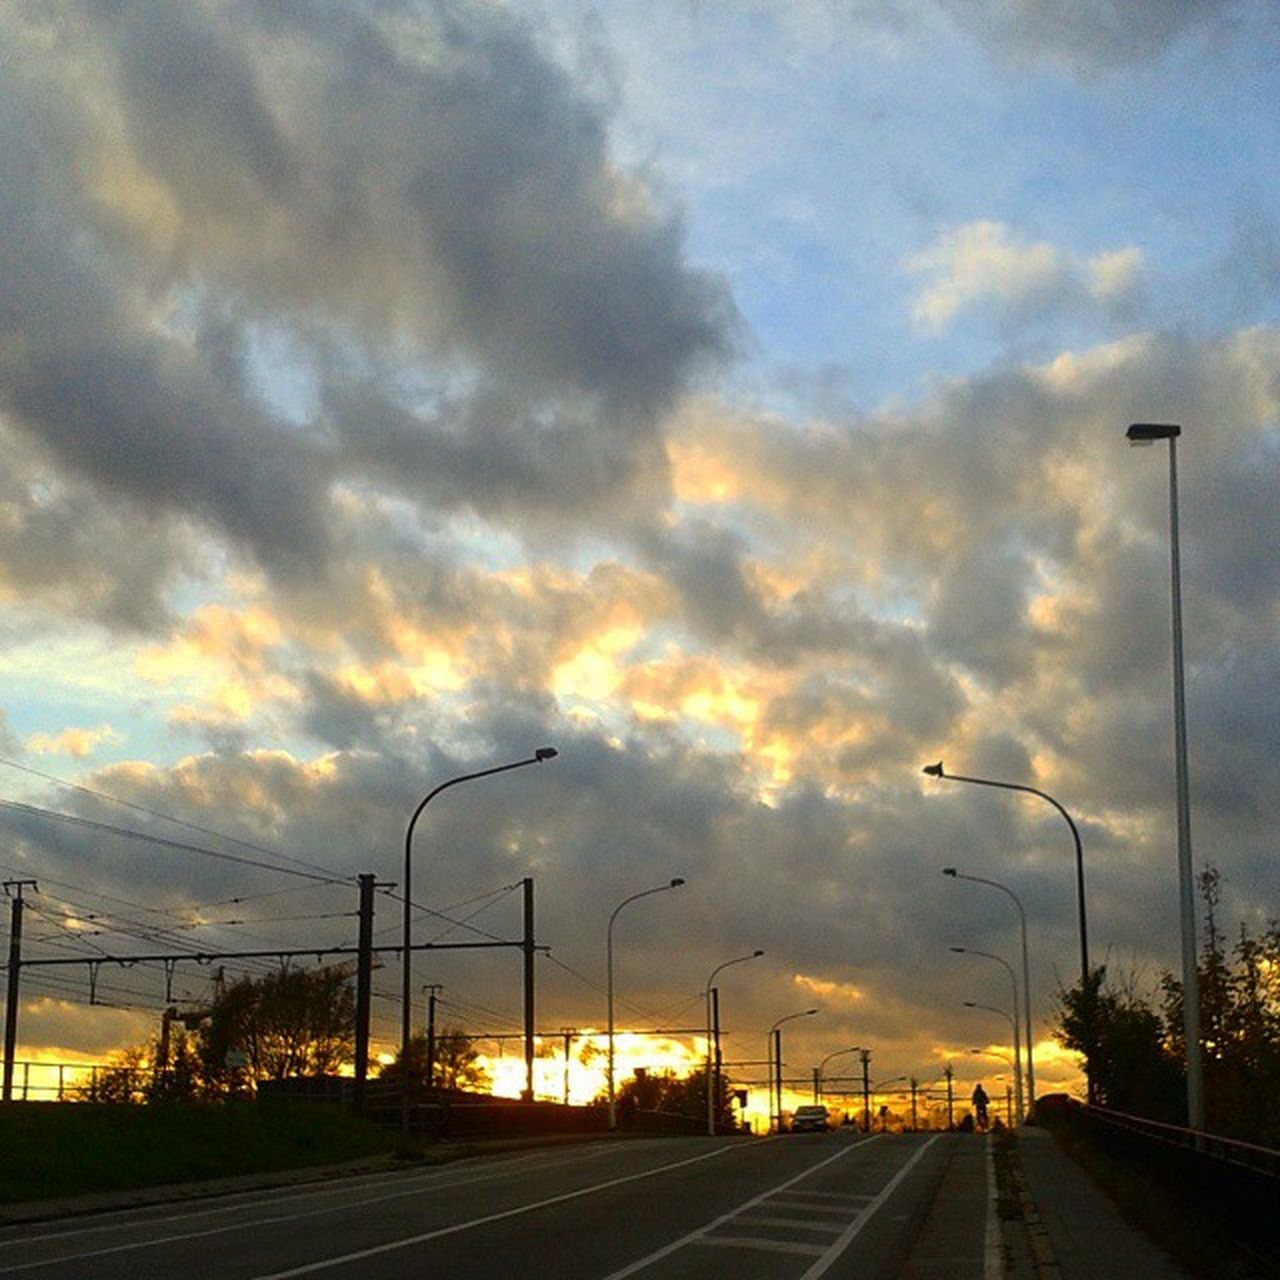 sky, cloud - sky, transportation, street light, no people, road, outdoors, electricity pylon, the way forward, sunset, tree, storm cloud, day, nature, city